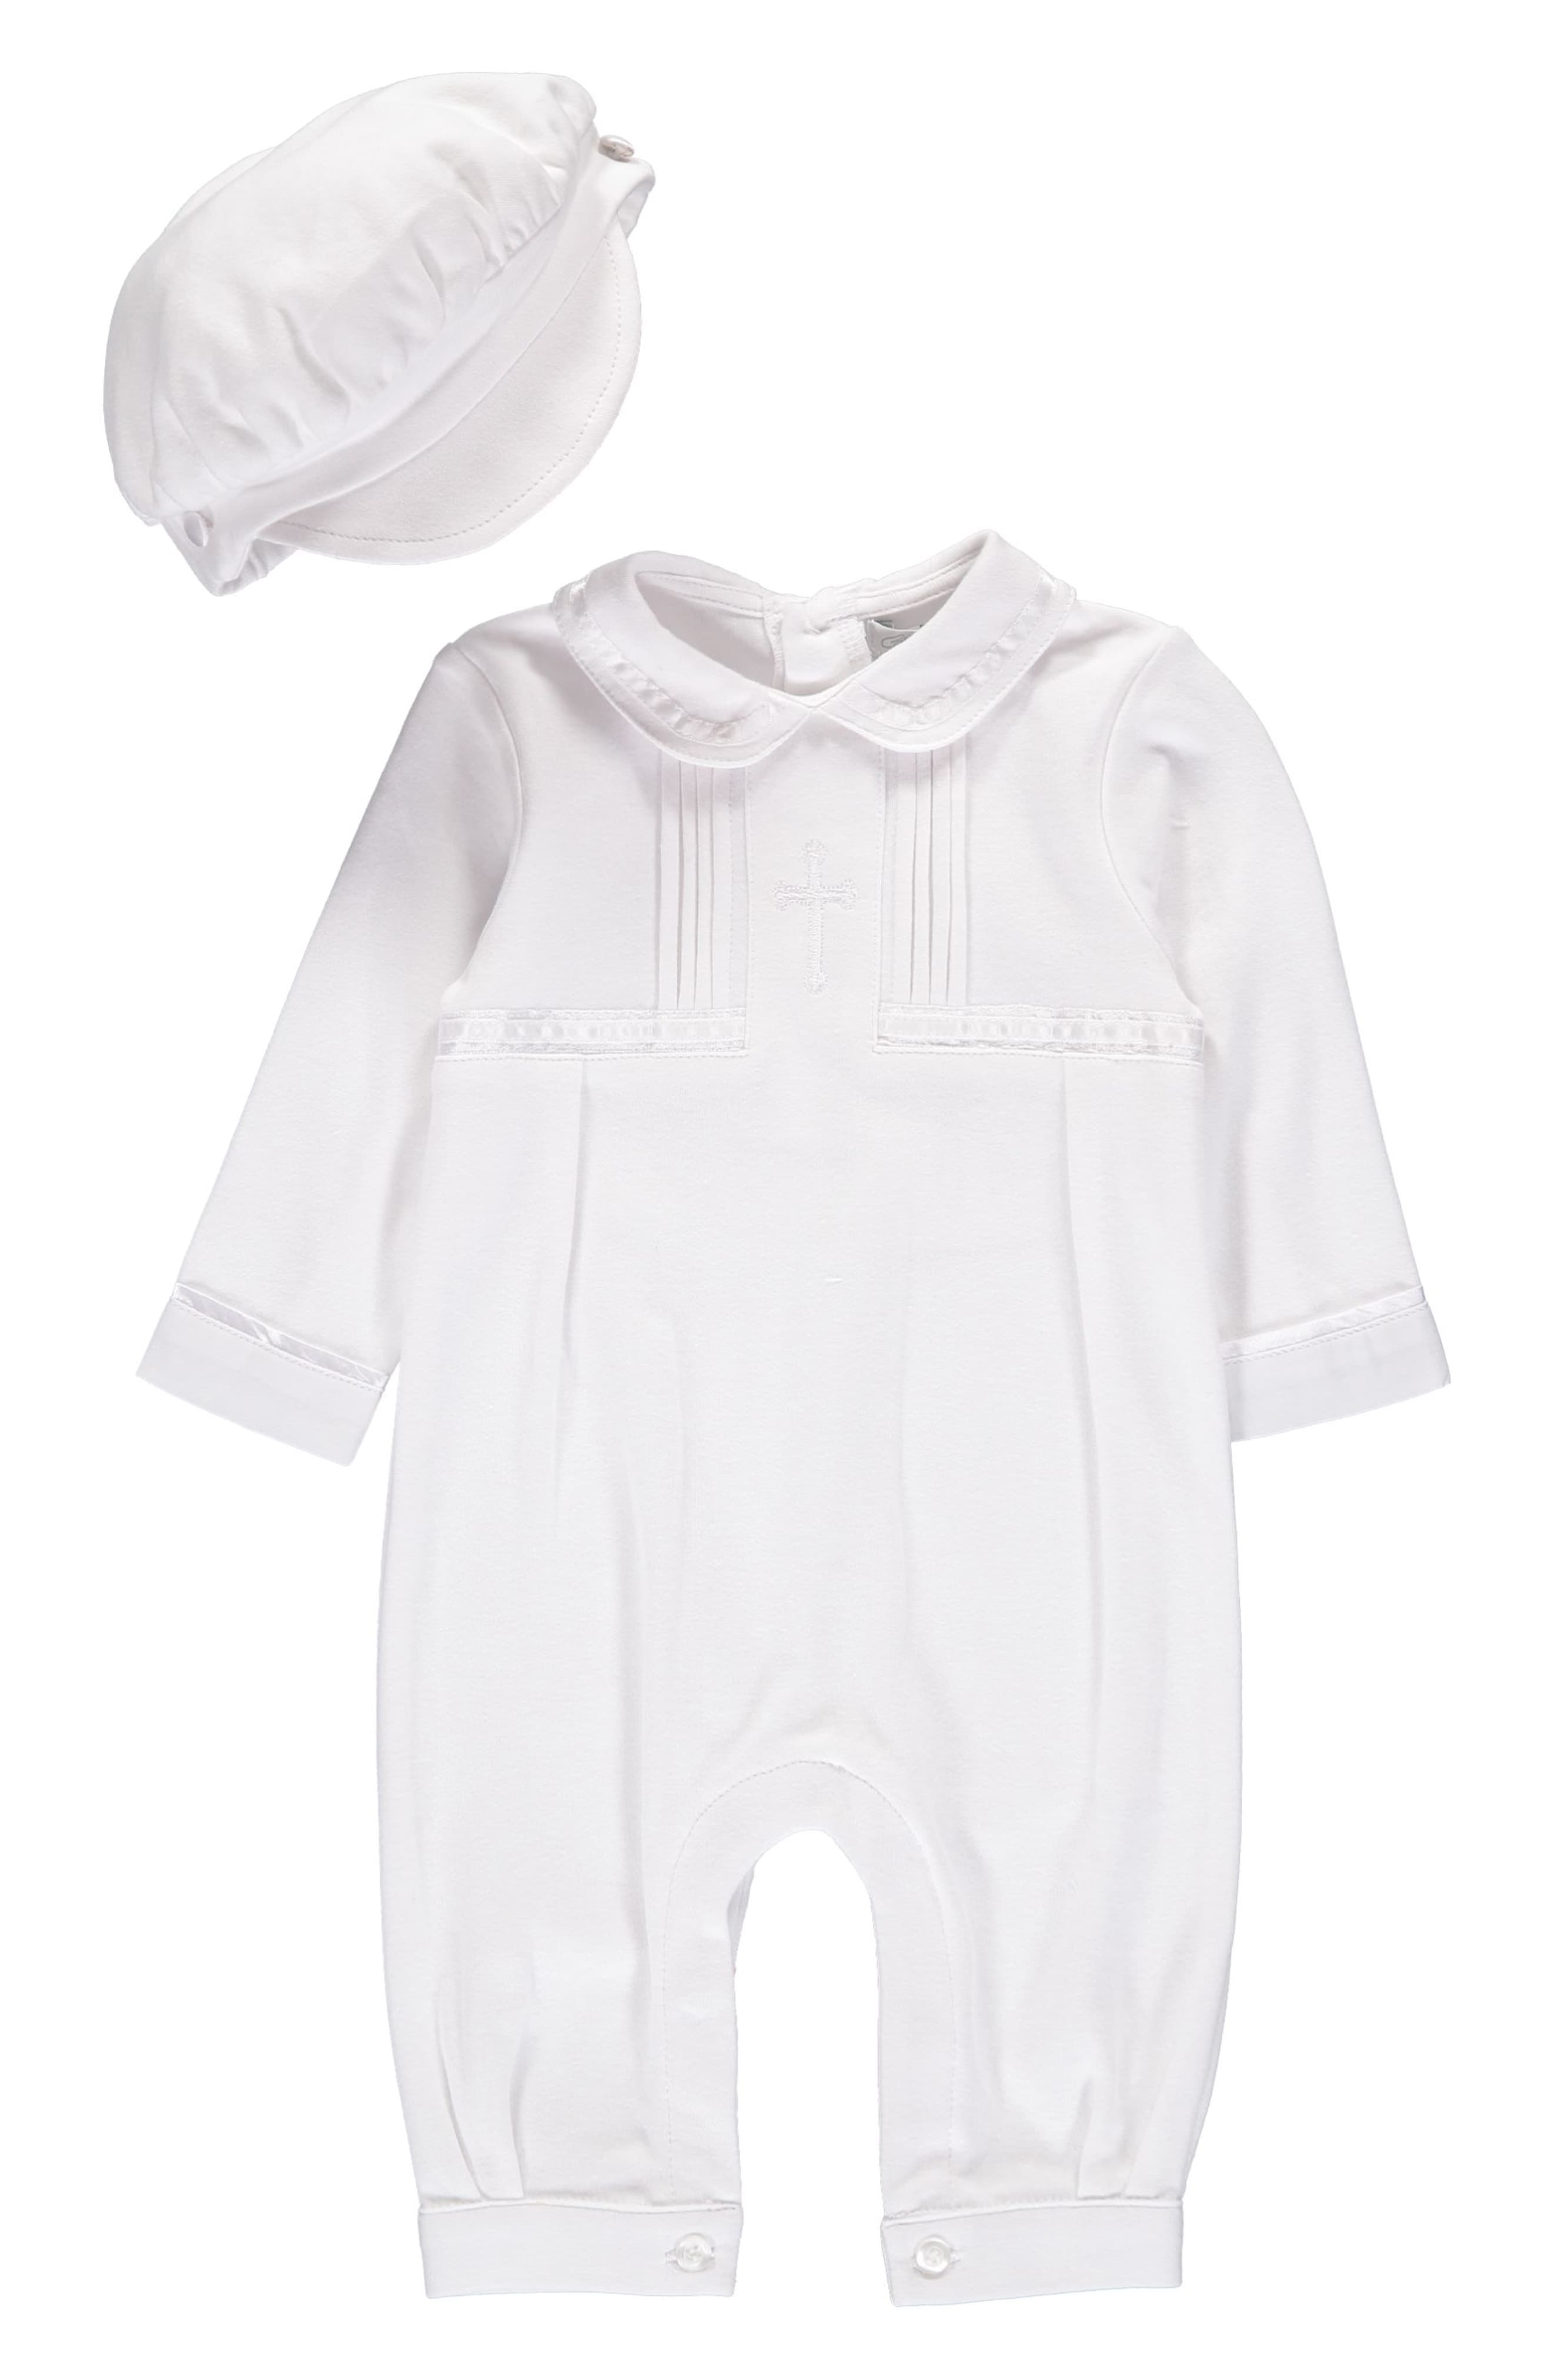 Carriage Boutique Baby Boy Elegant Christening Outfit with Hat